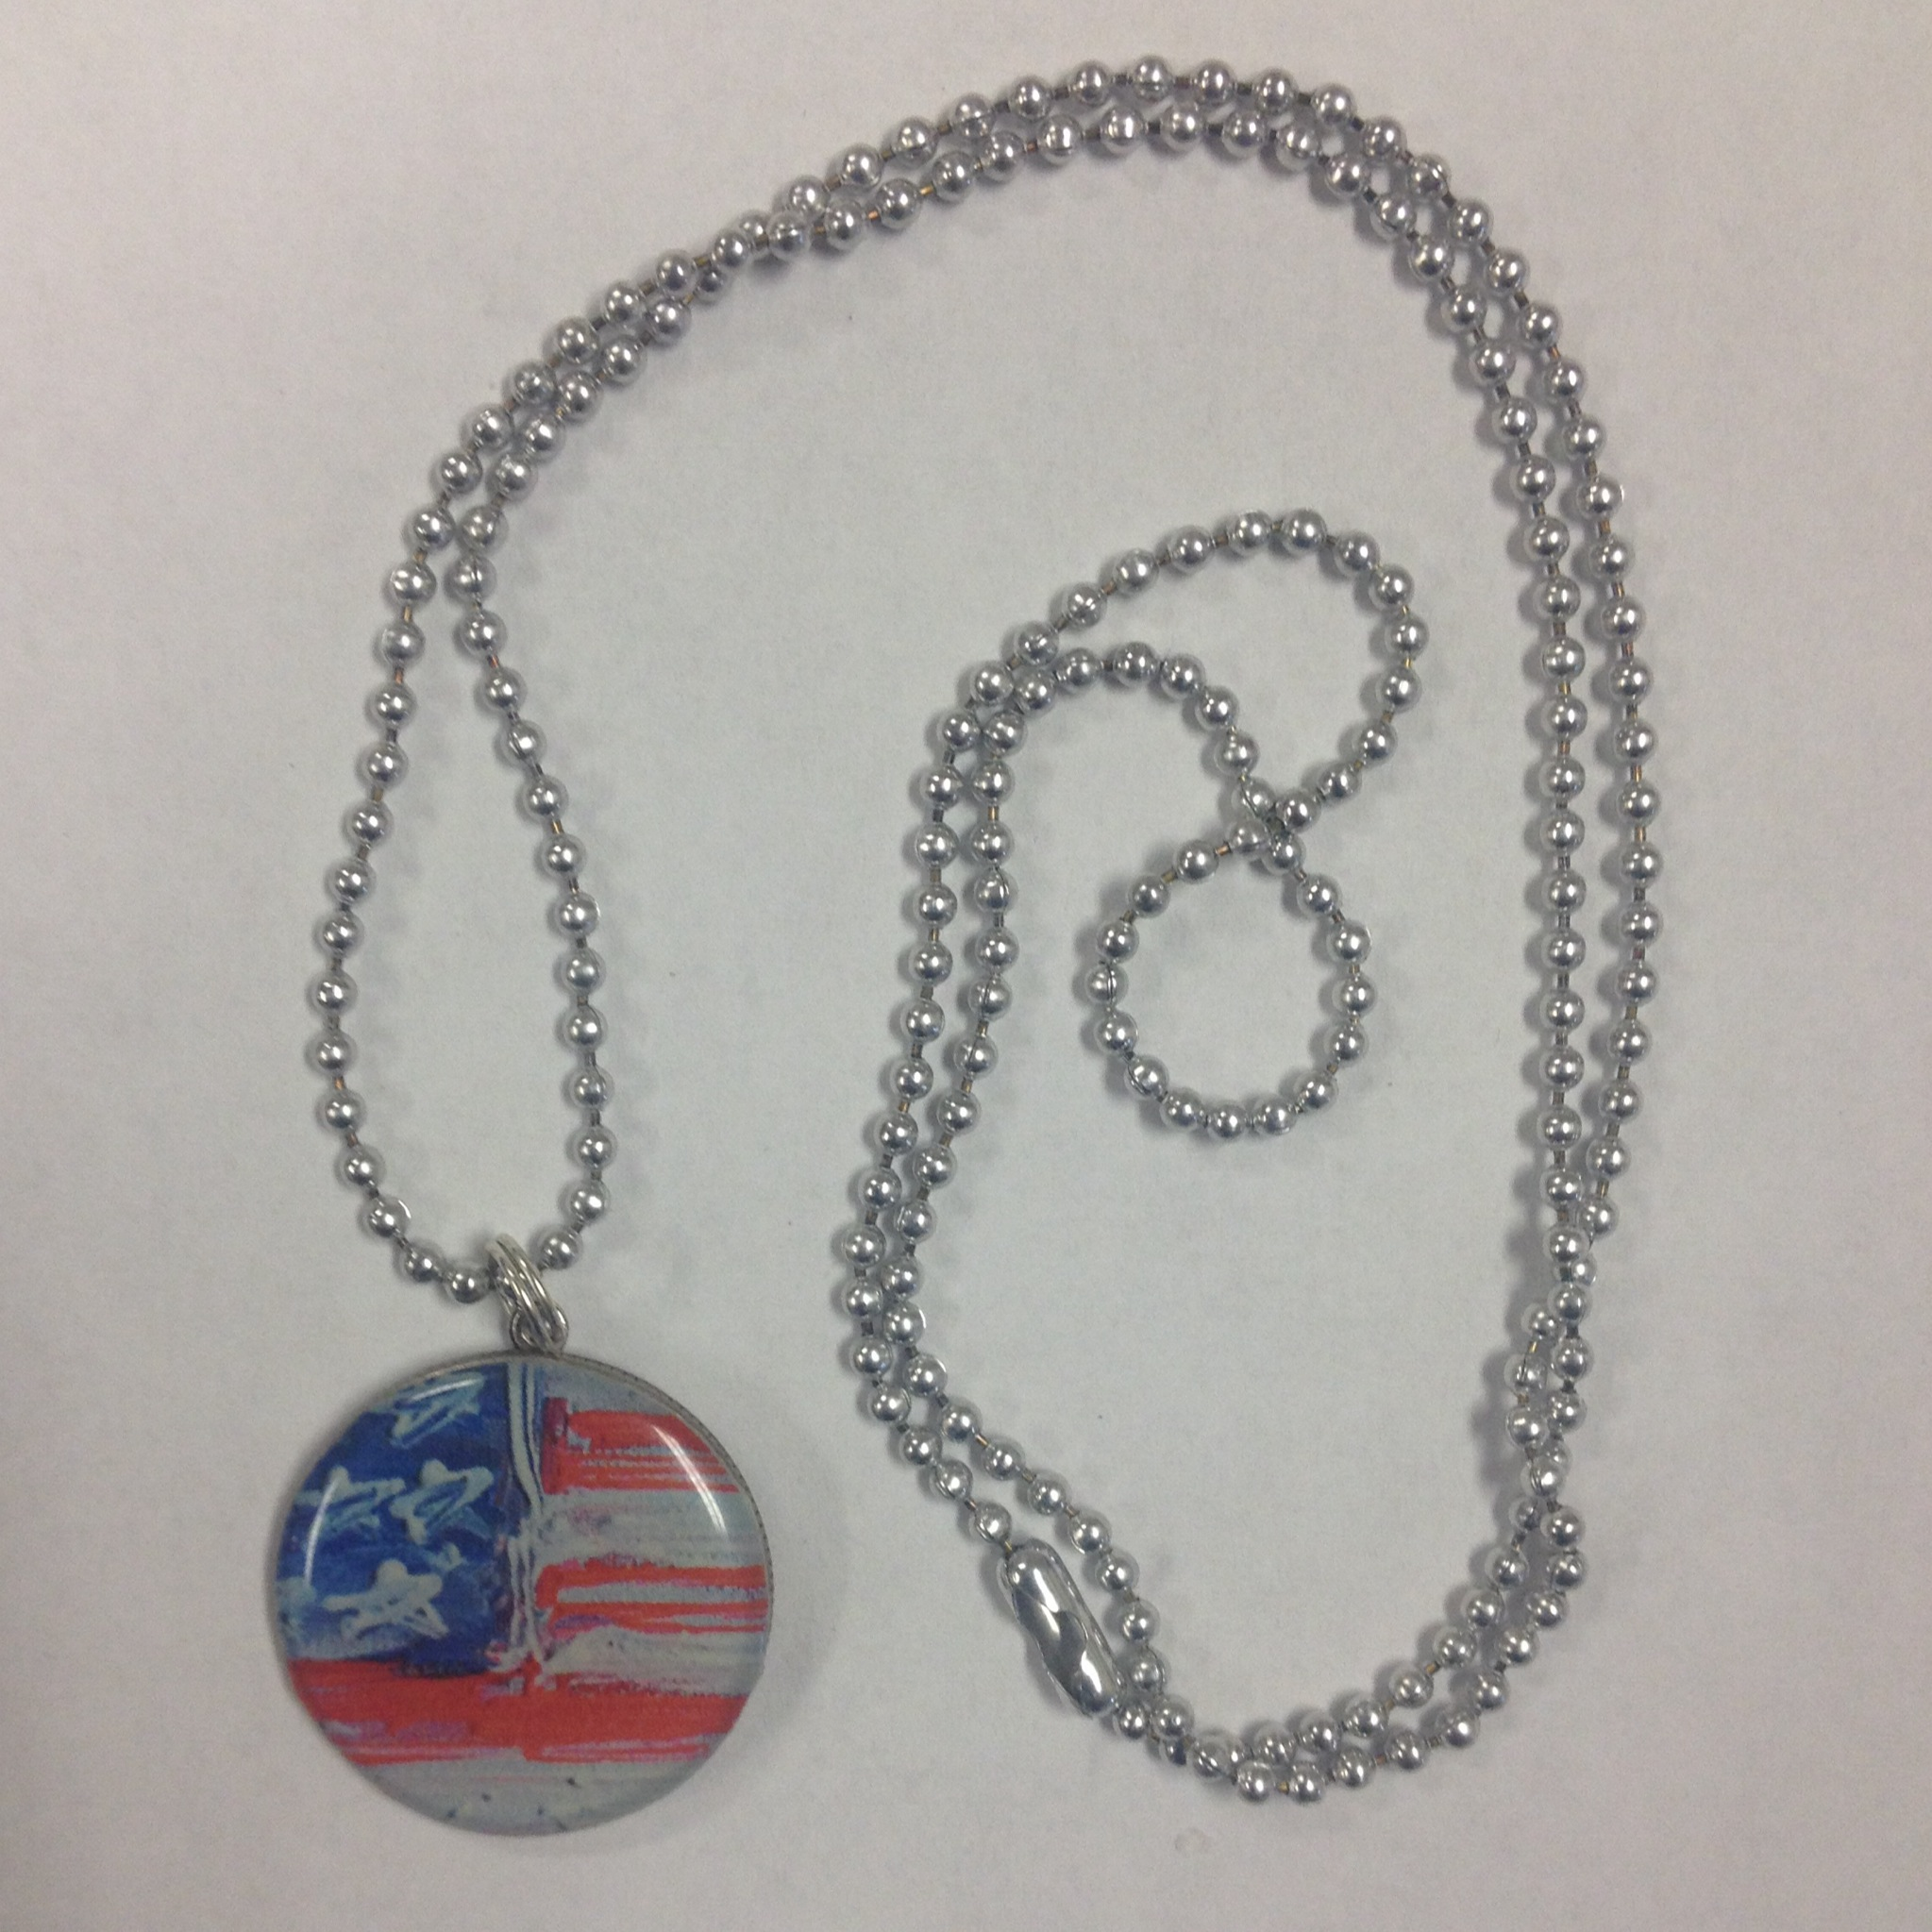 products elvy image american flag product necklace